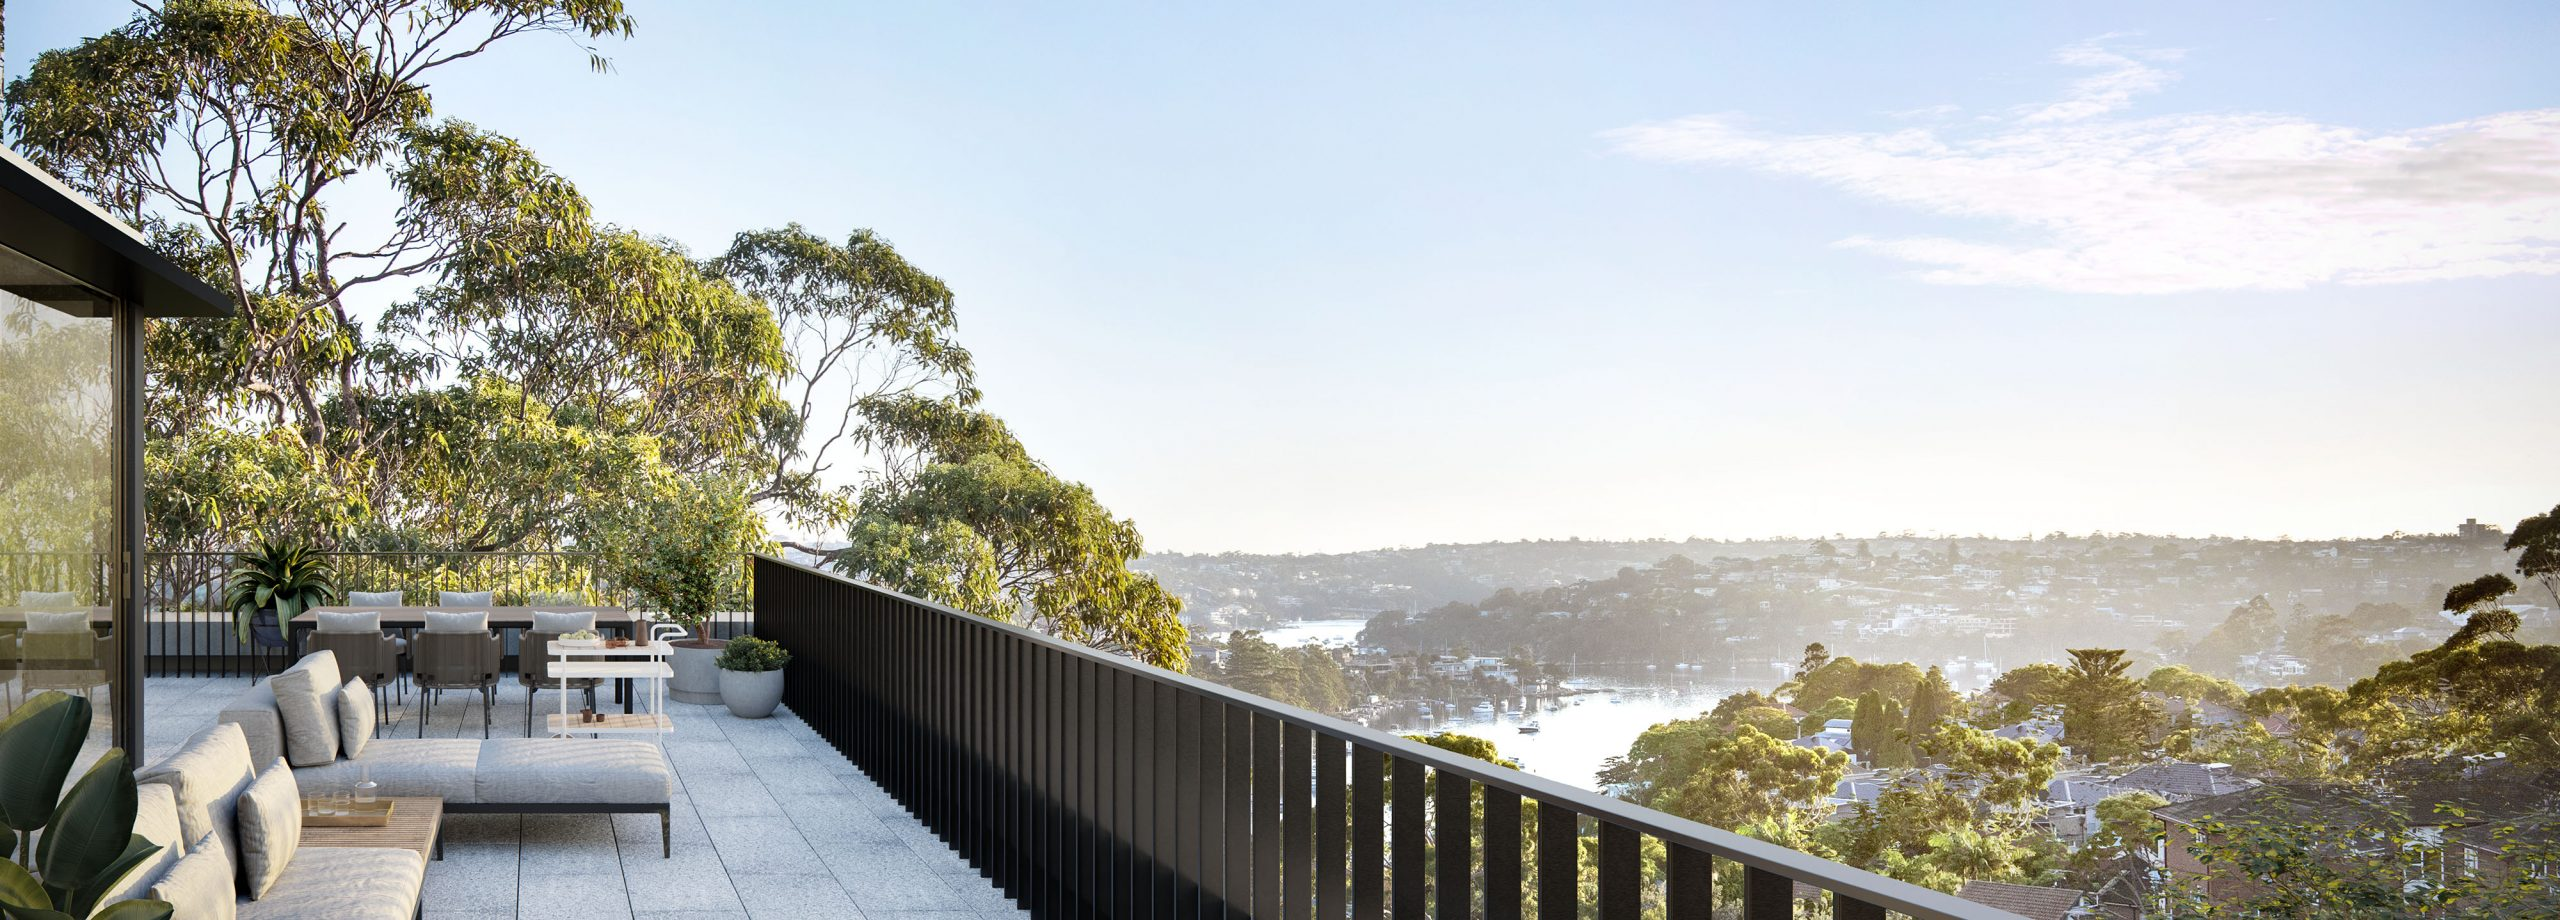 Riserva Cammeray attracts downsizers looking for lifestyle